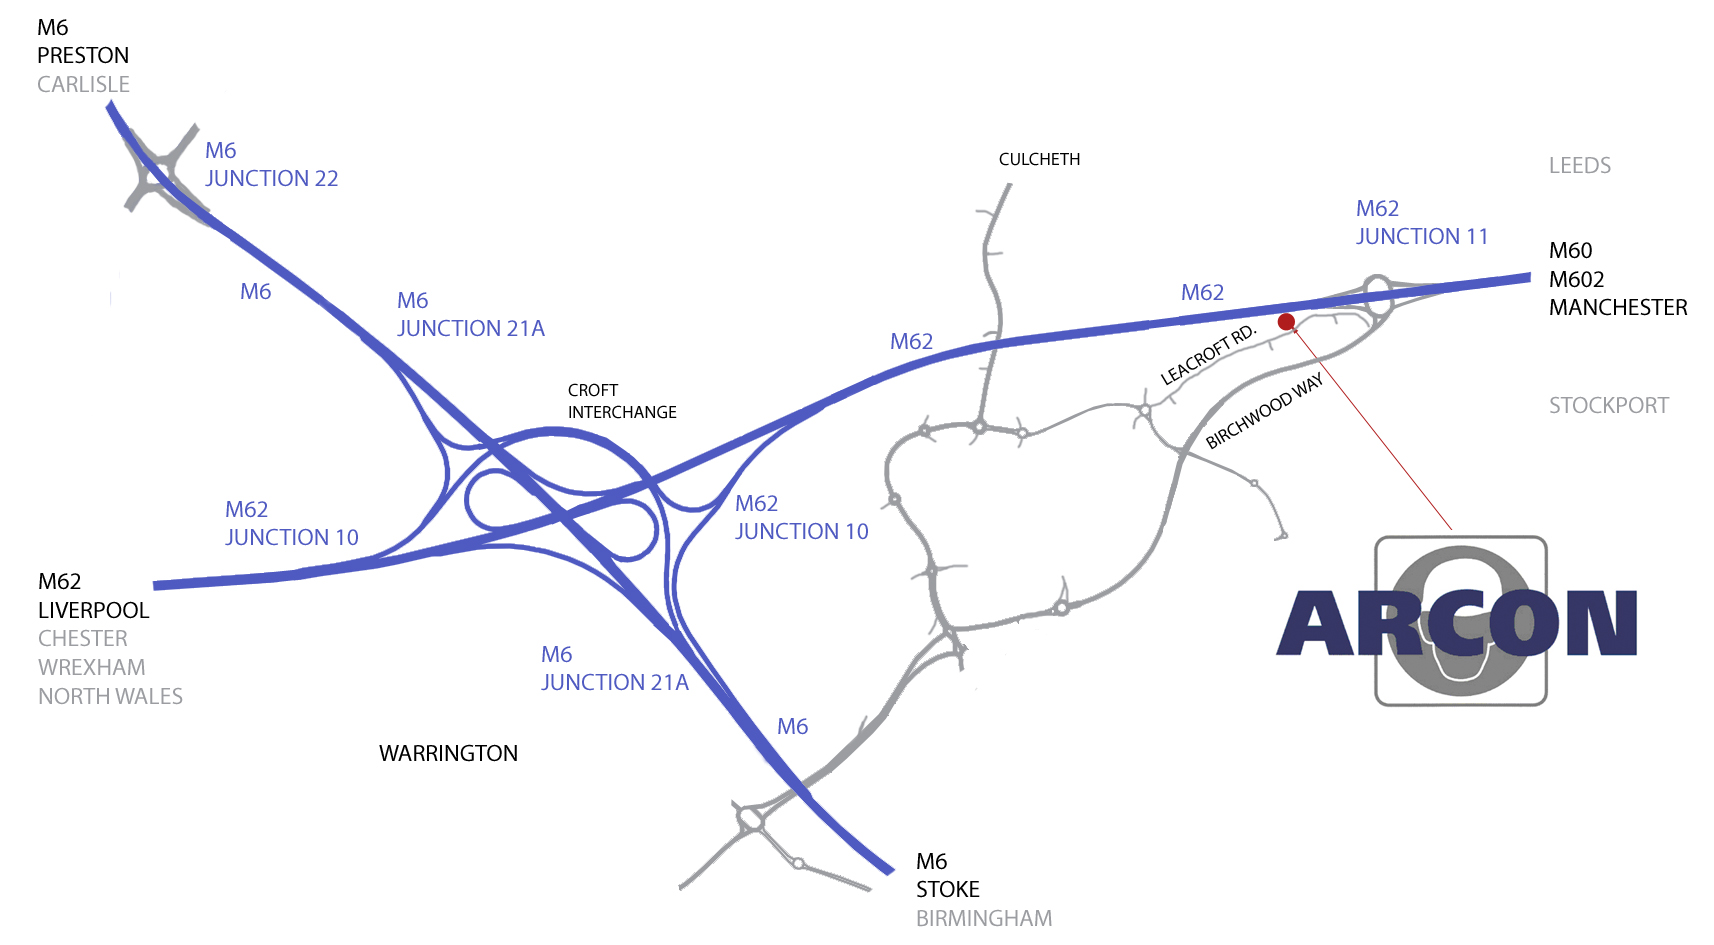 Arcon Warrington location close to Manchester